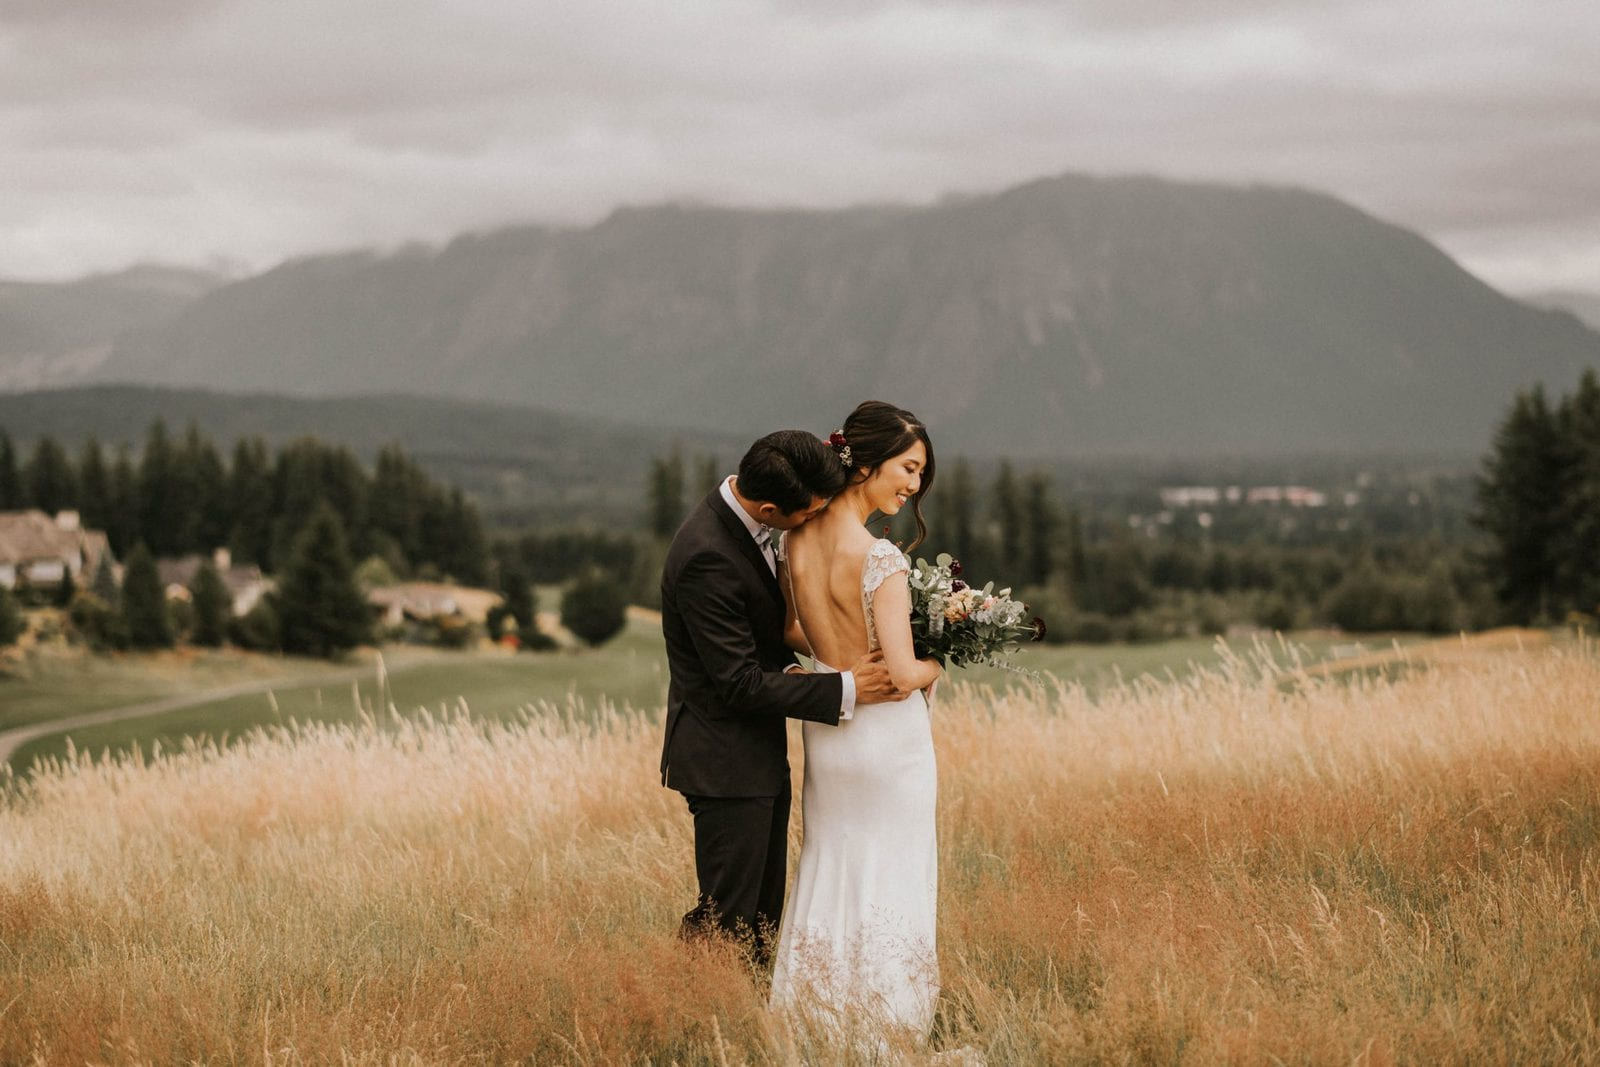 Bride and groom posing in open field with mountains in the background